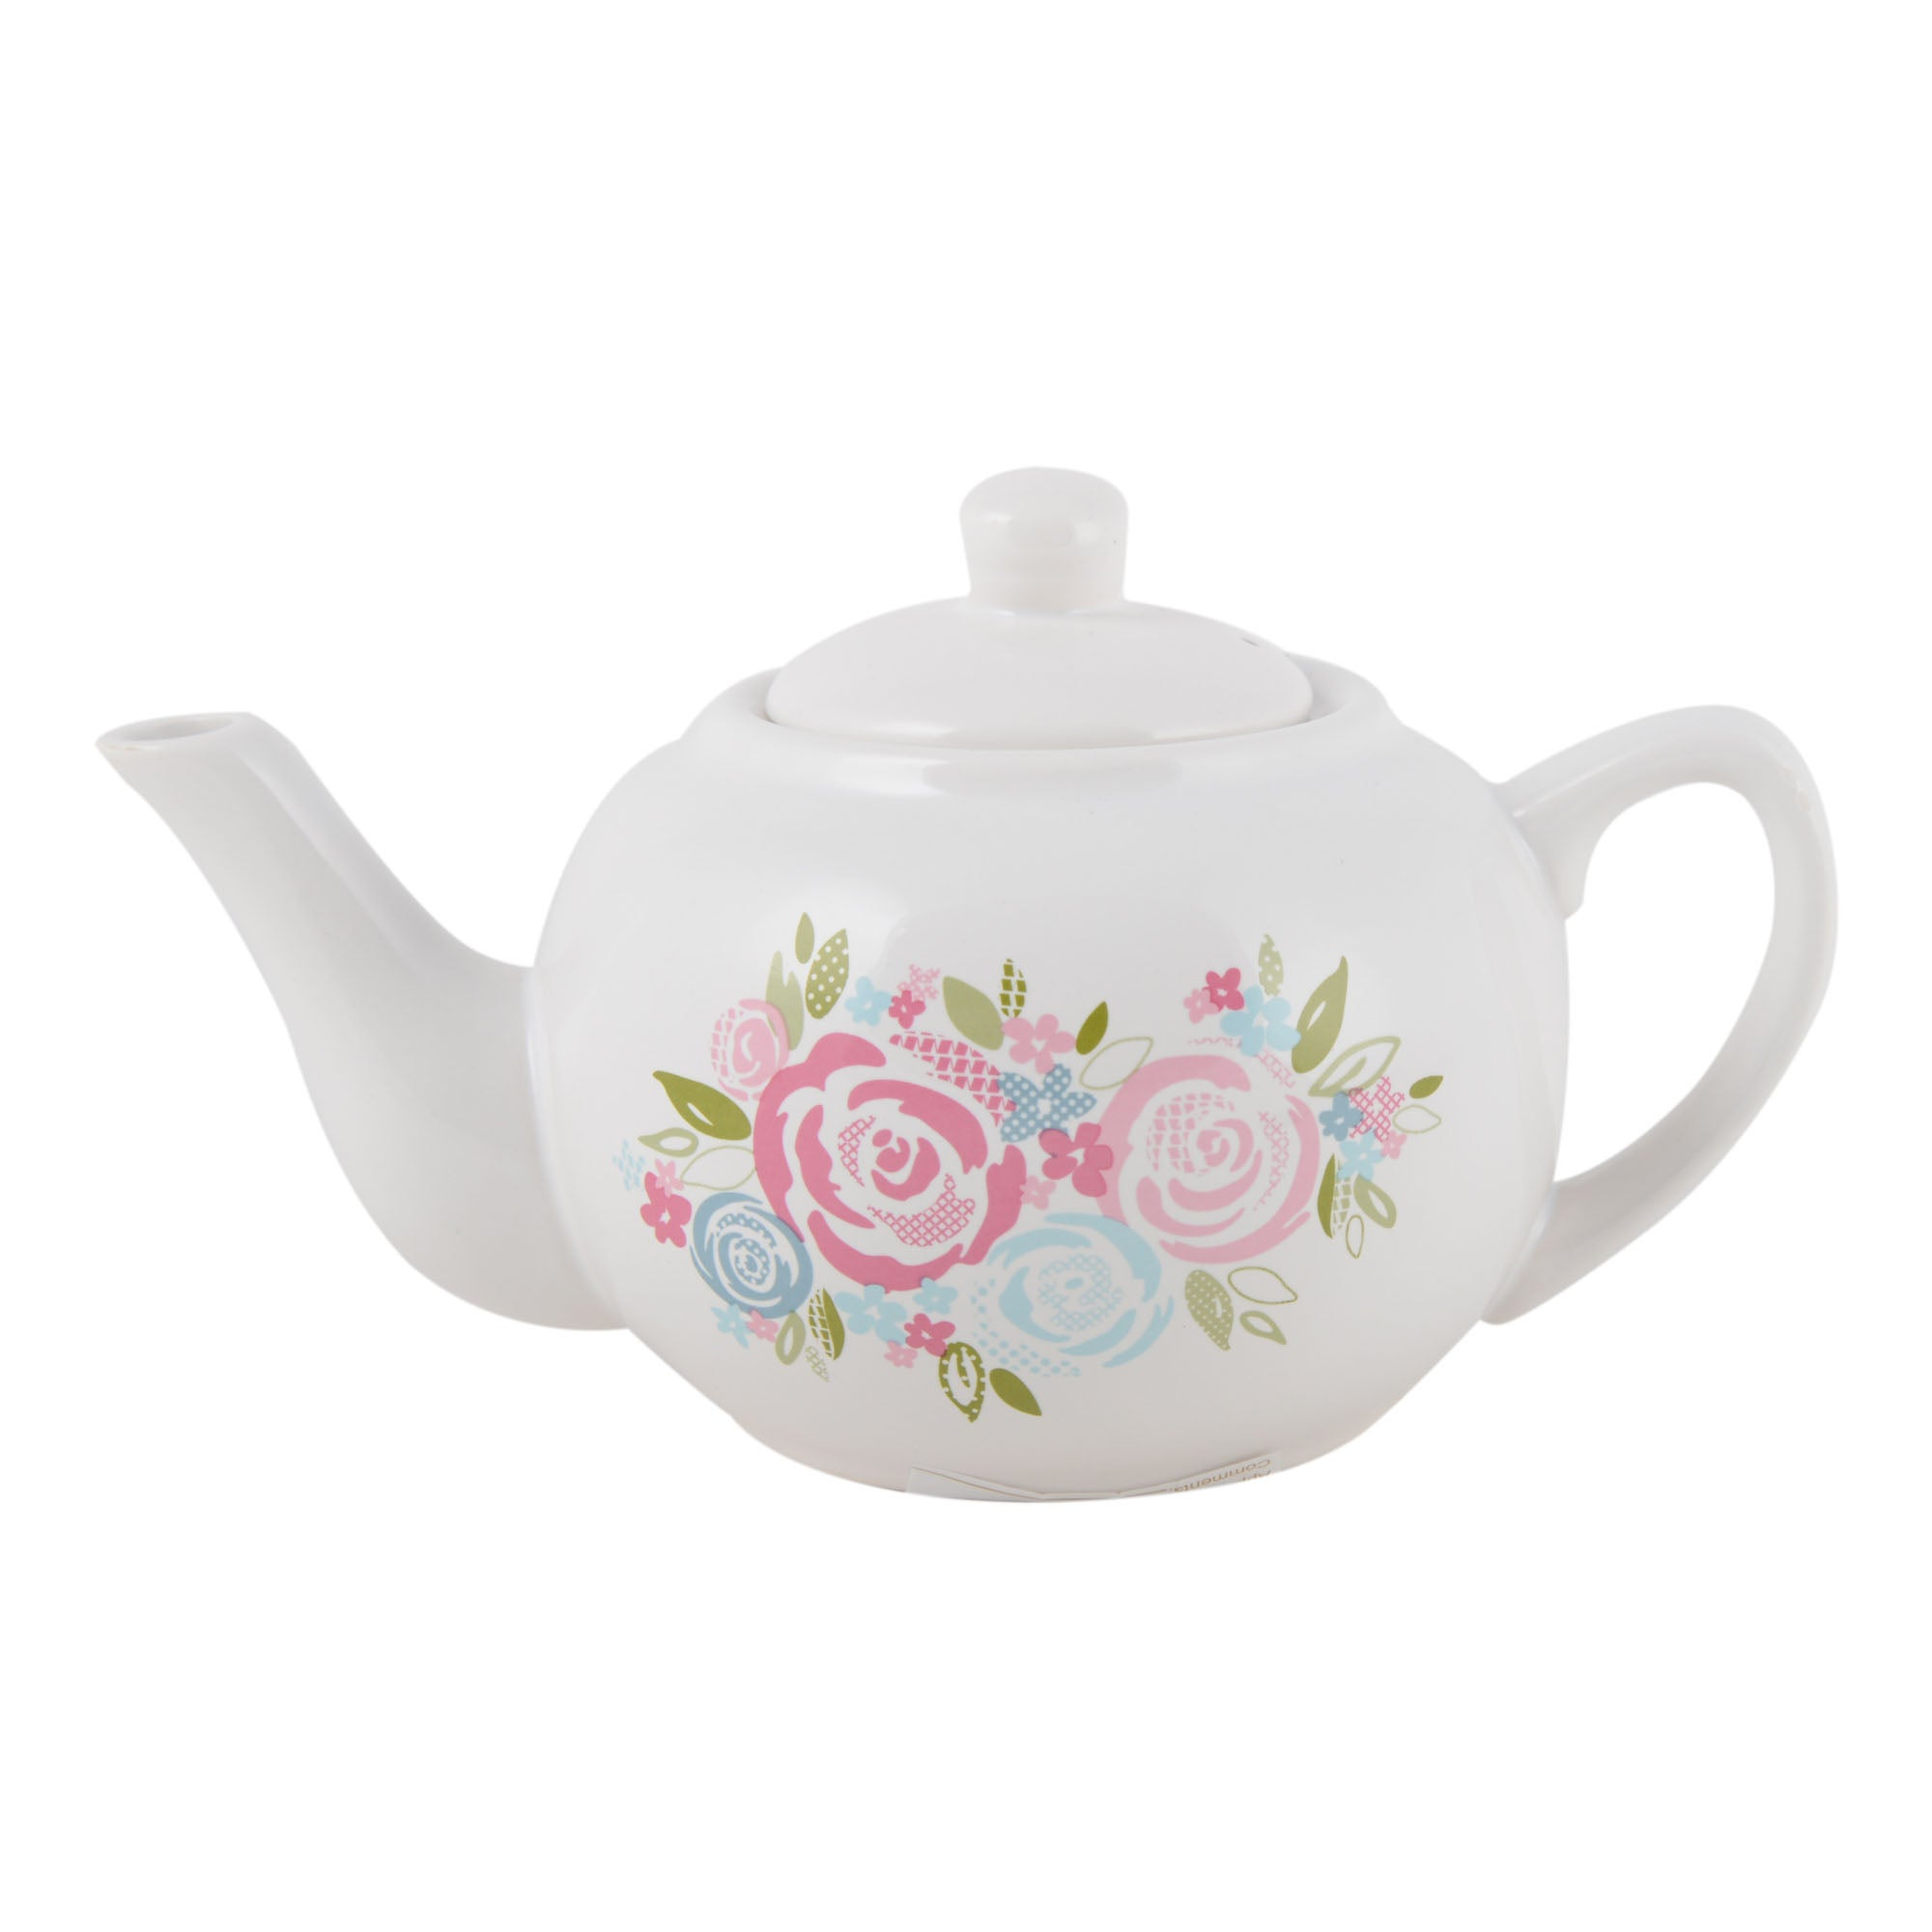 Candy Rose Floral Collection Teapot